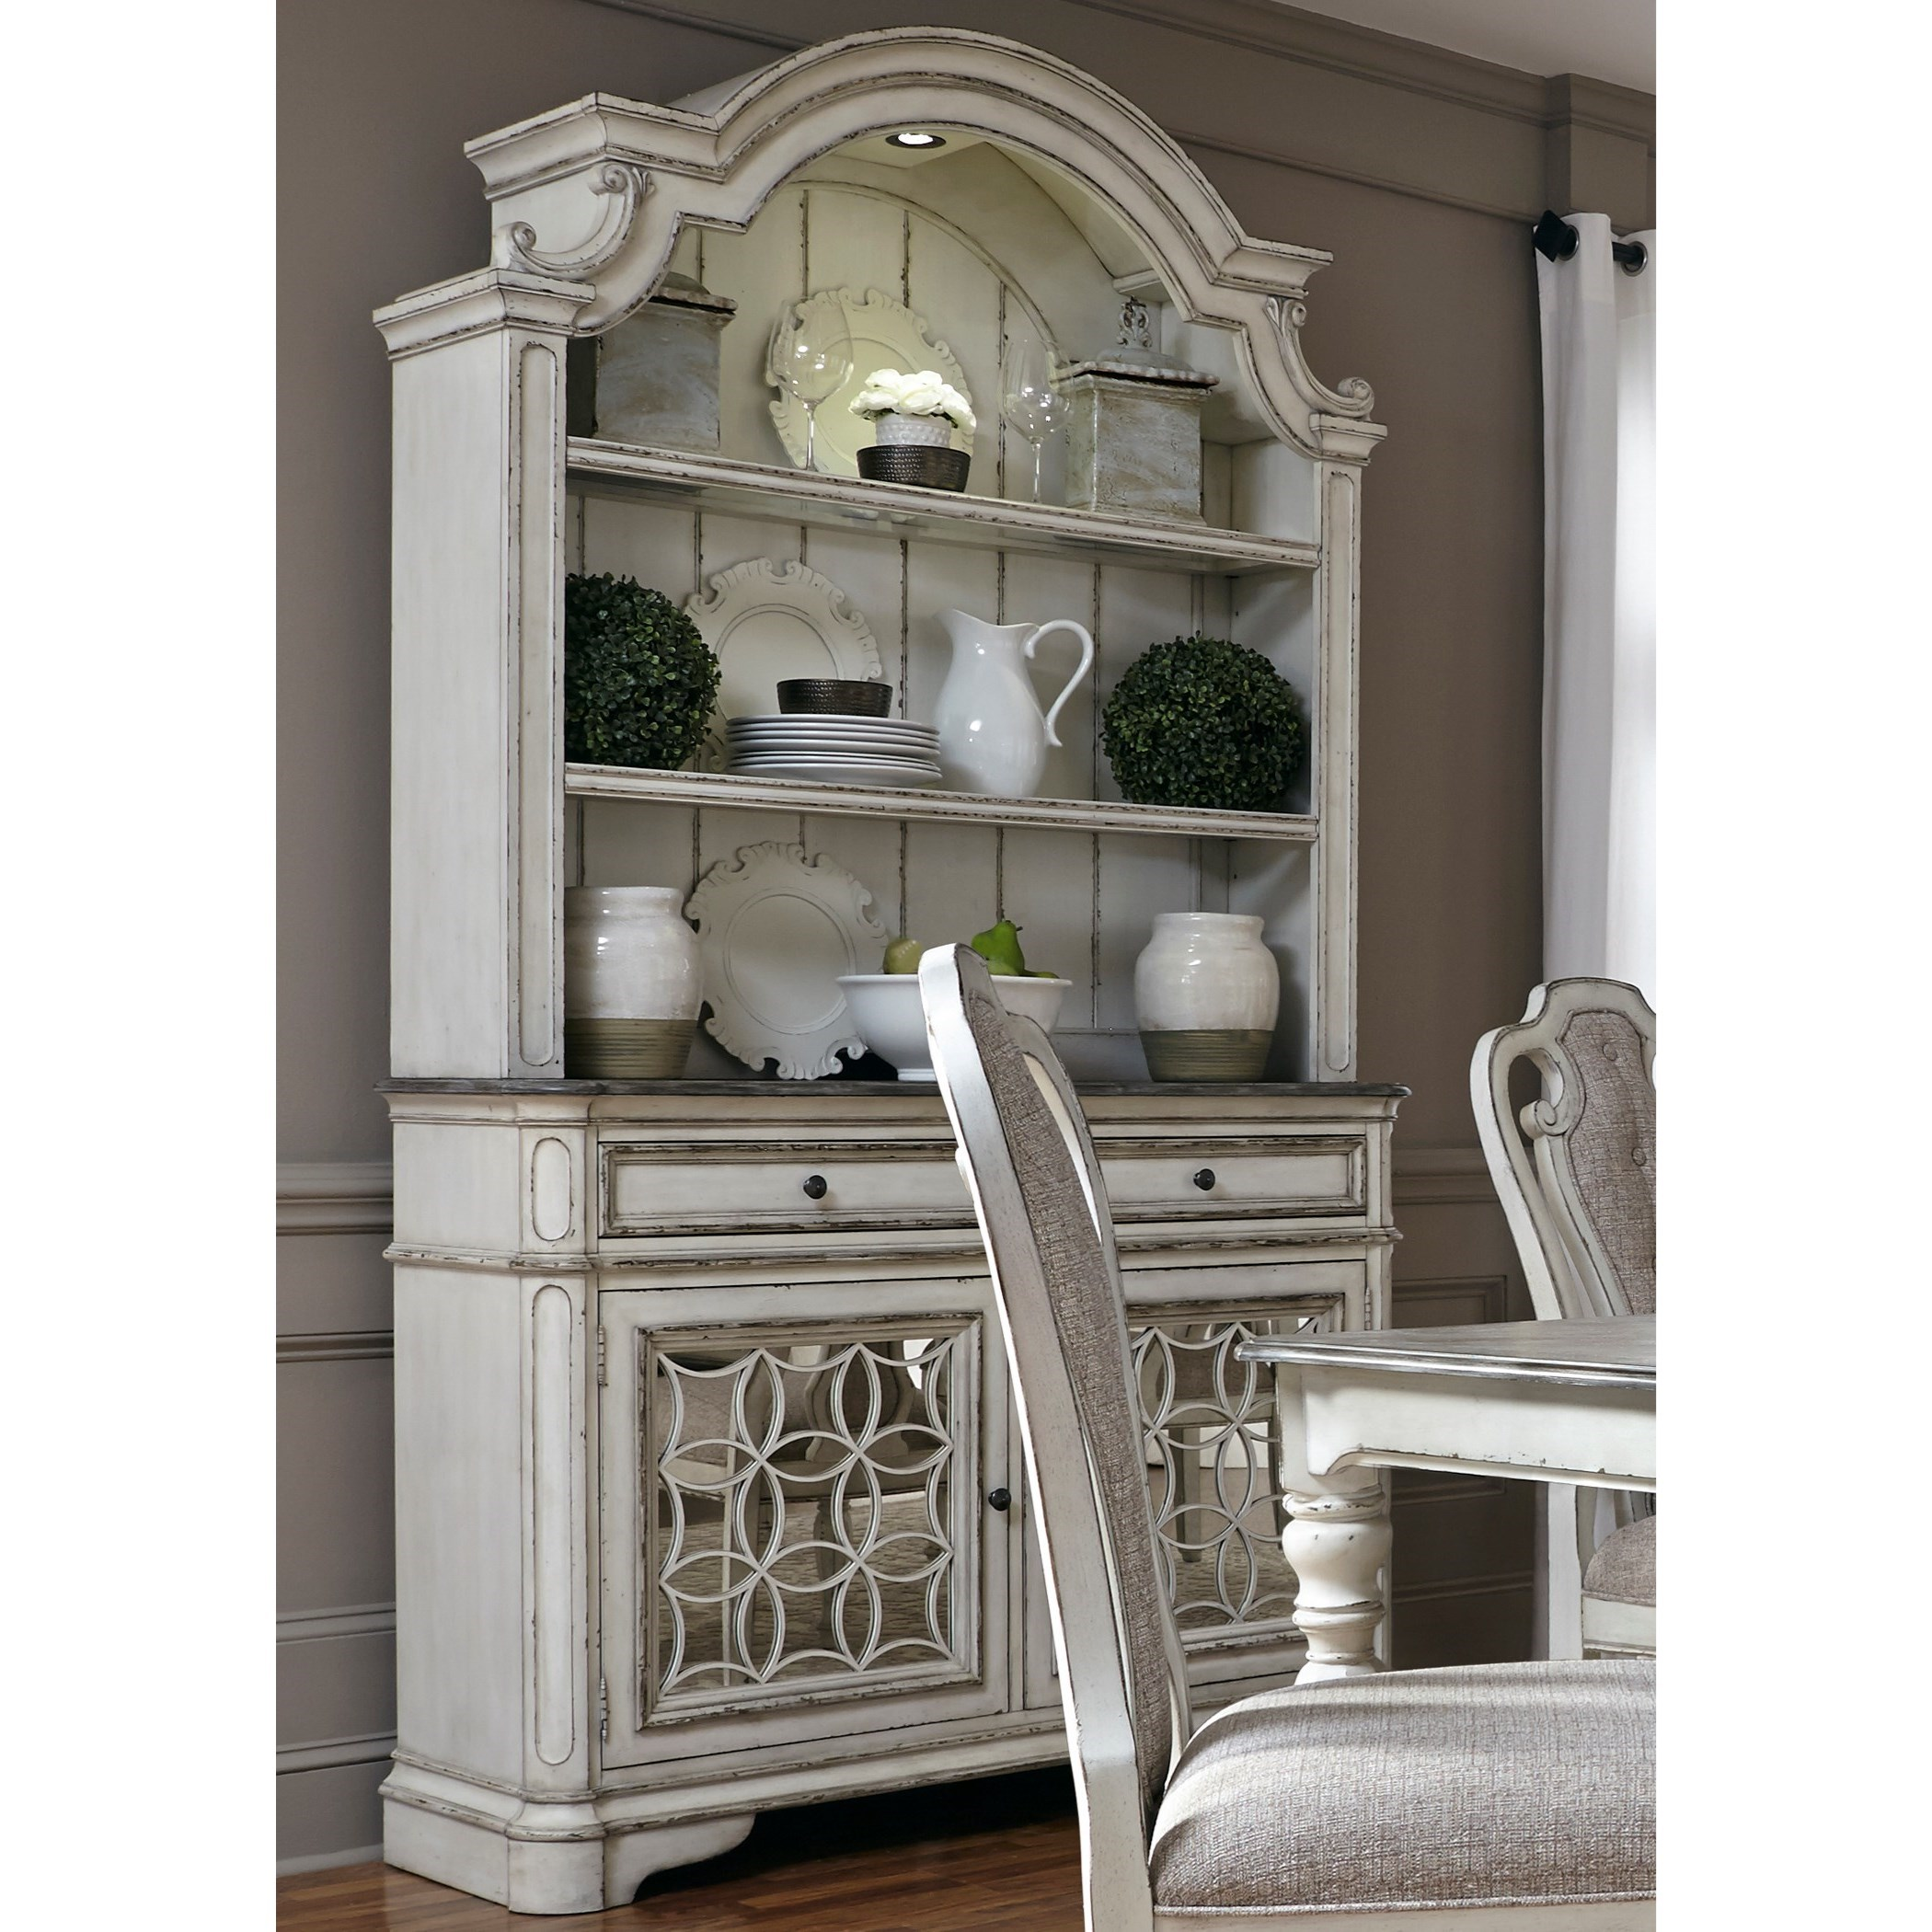 Magnolia Manor Dining Dining Buffet and Hutch by Liberty Furniture at Lapeer Furniture & Mattress Center